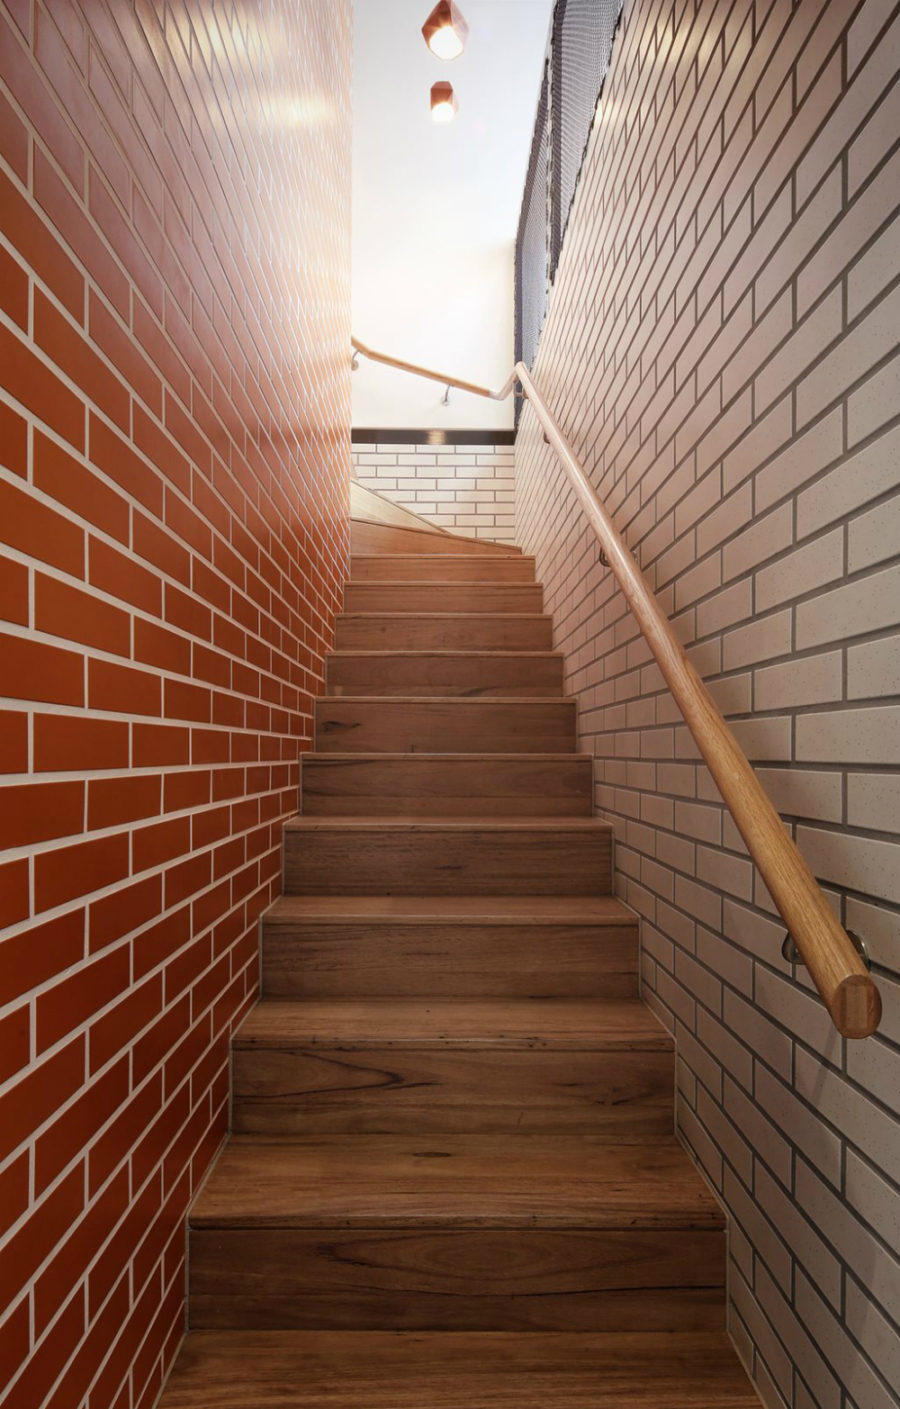 Brick walls surrounding a staircase